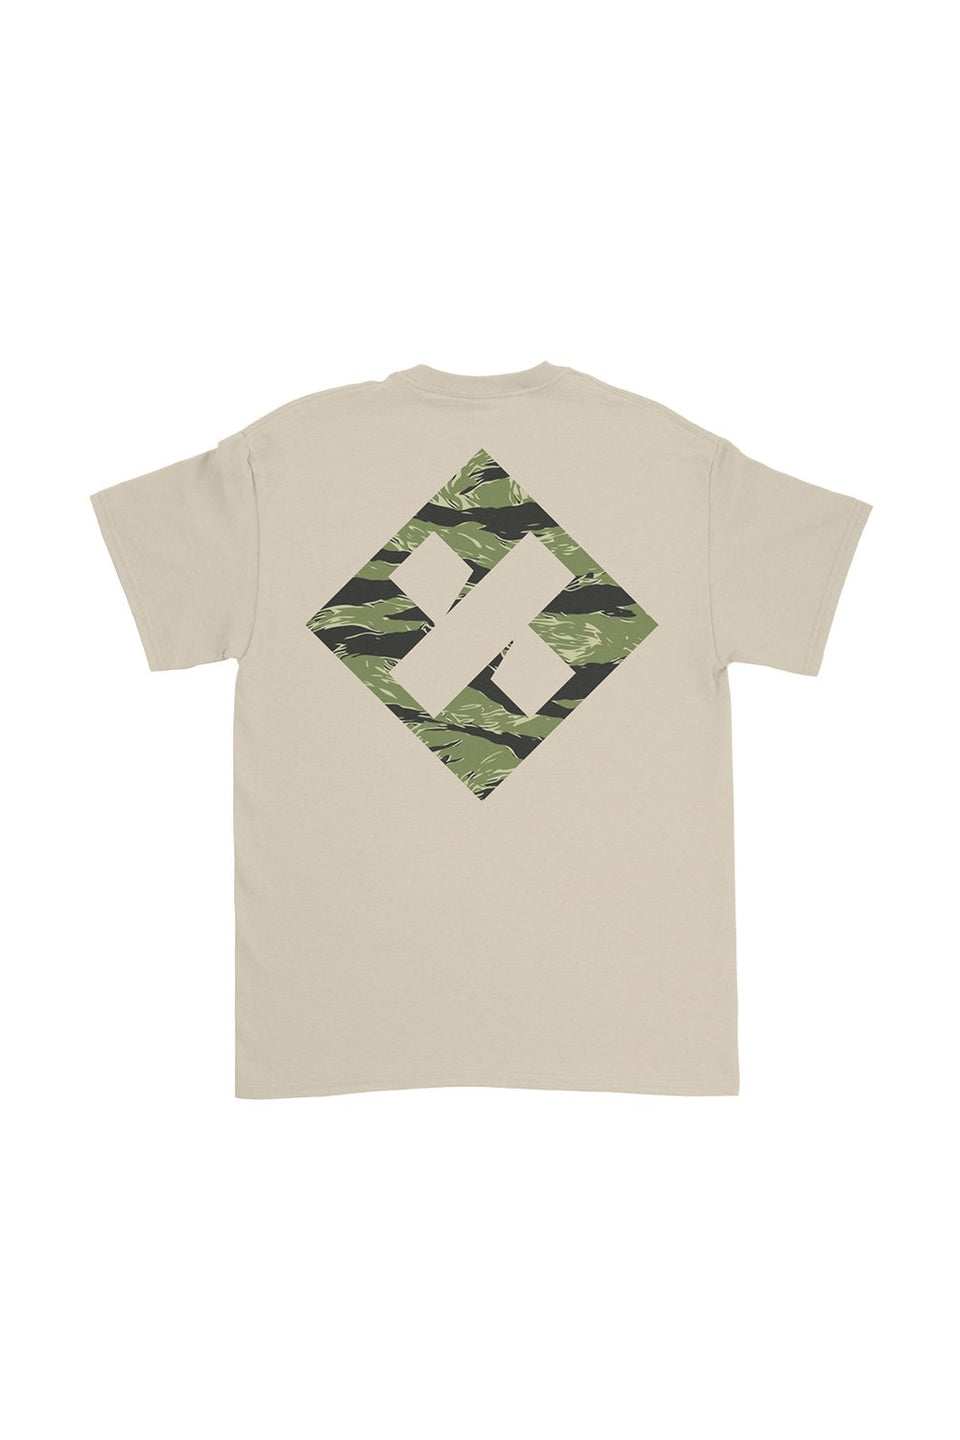 X P L R: LIMITED EDITION TIGER CAMO SHIRT